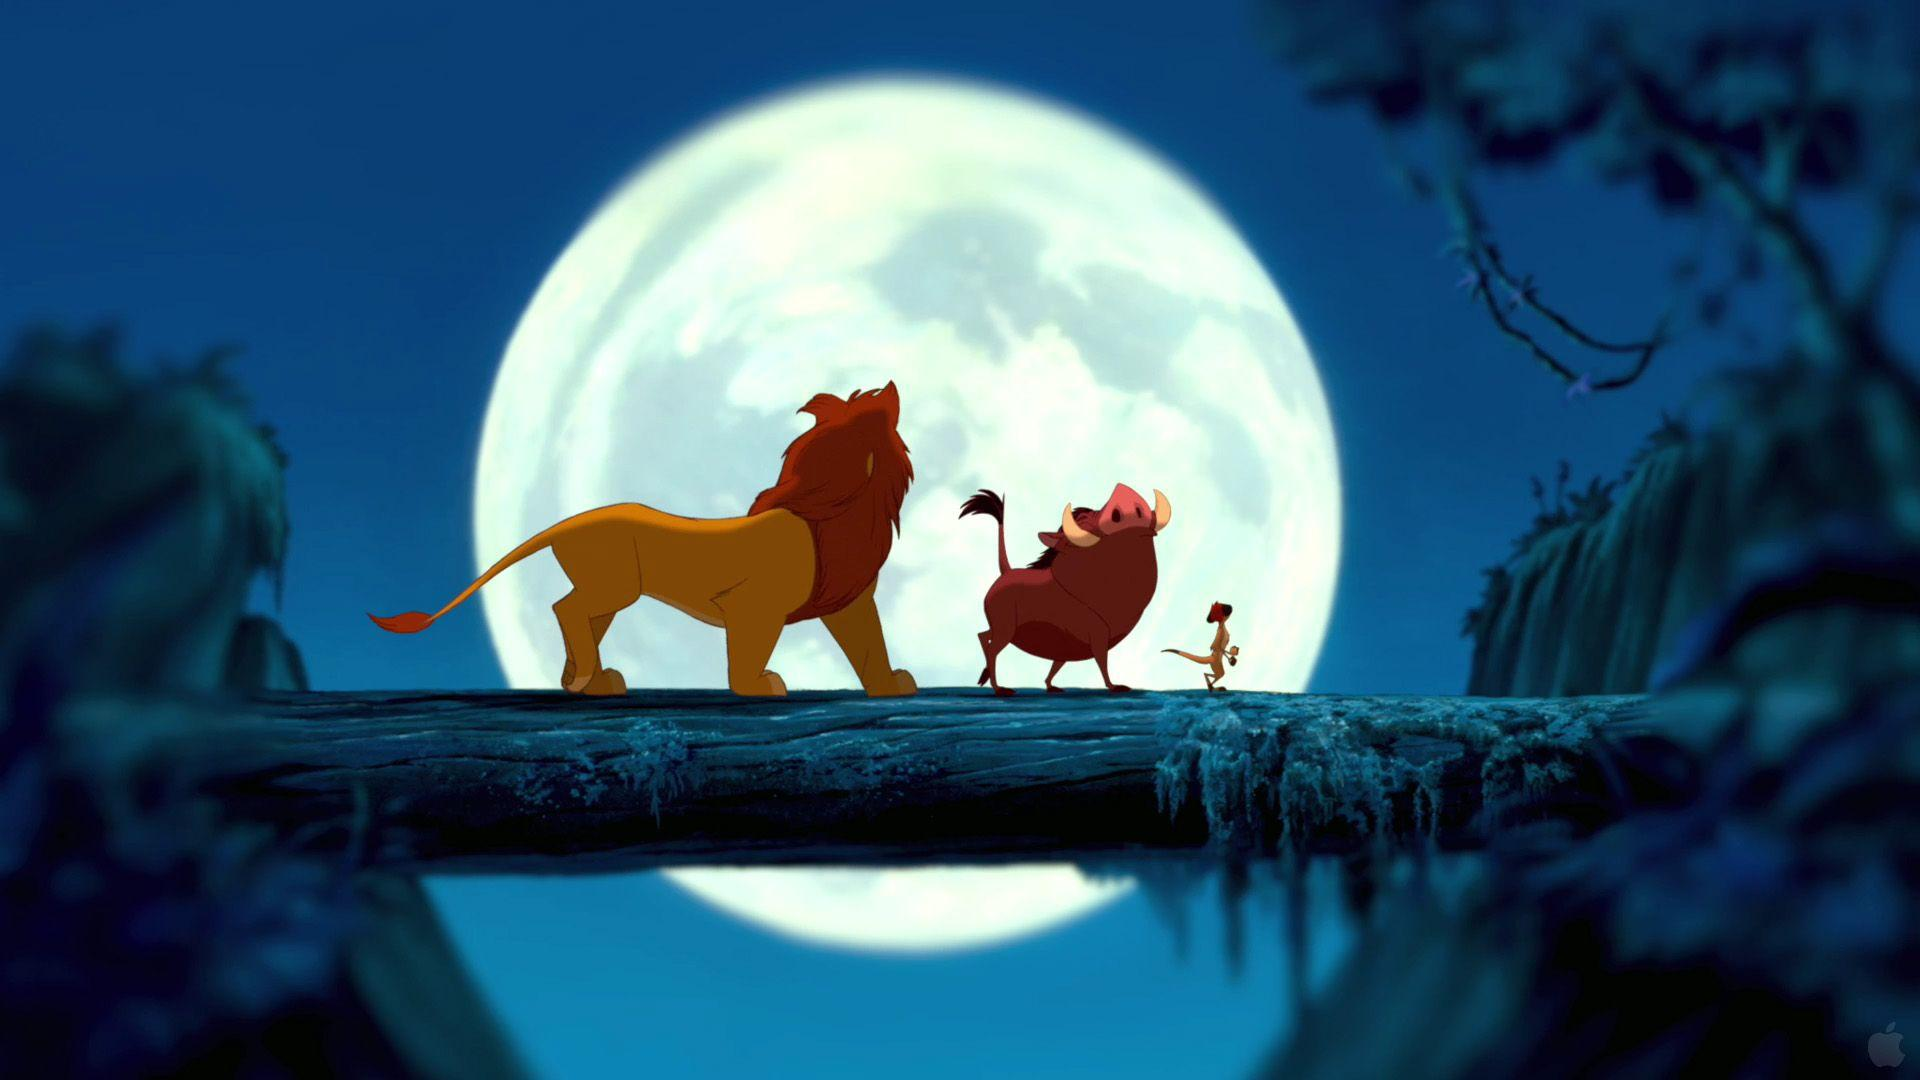 Lion King Wallpapers for Desktop